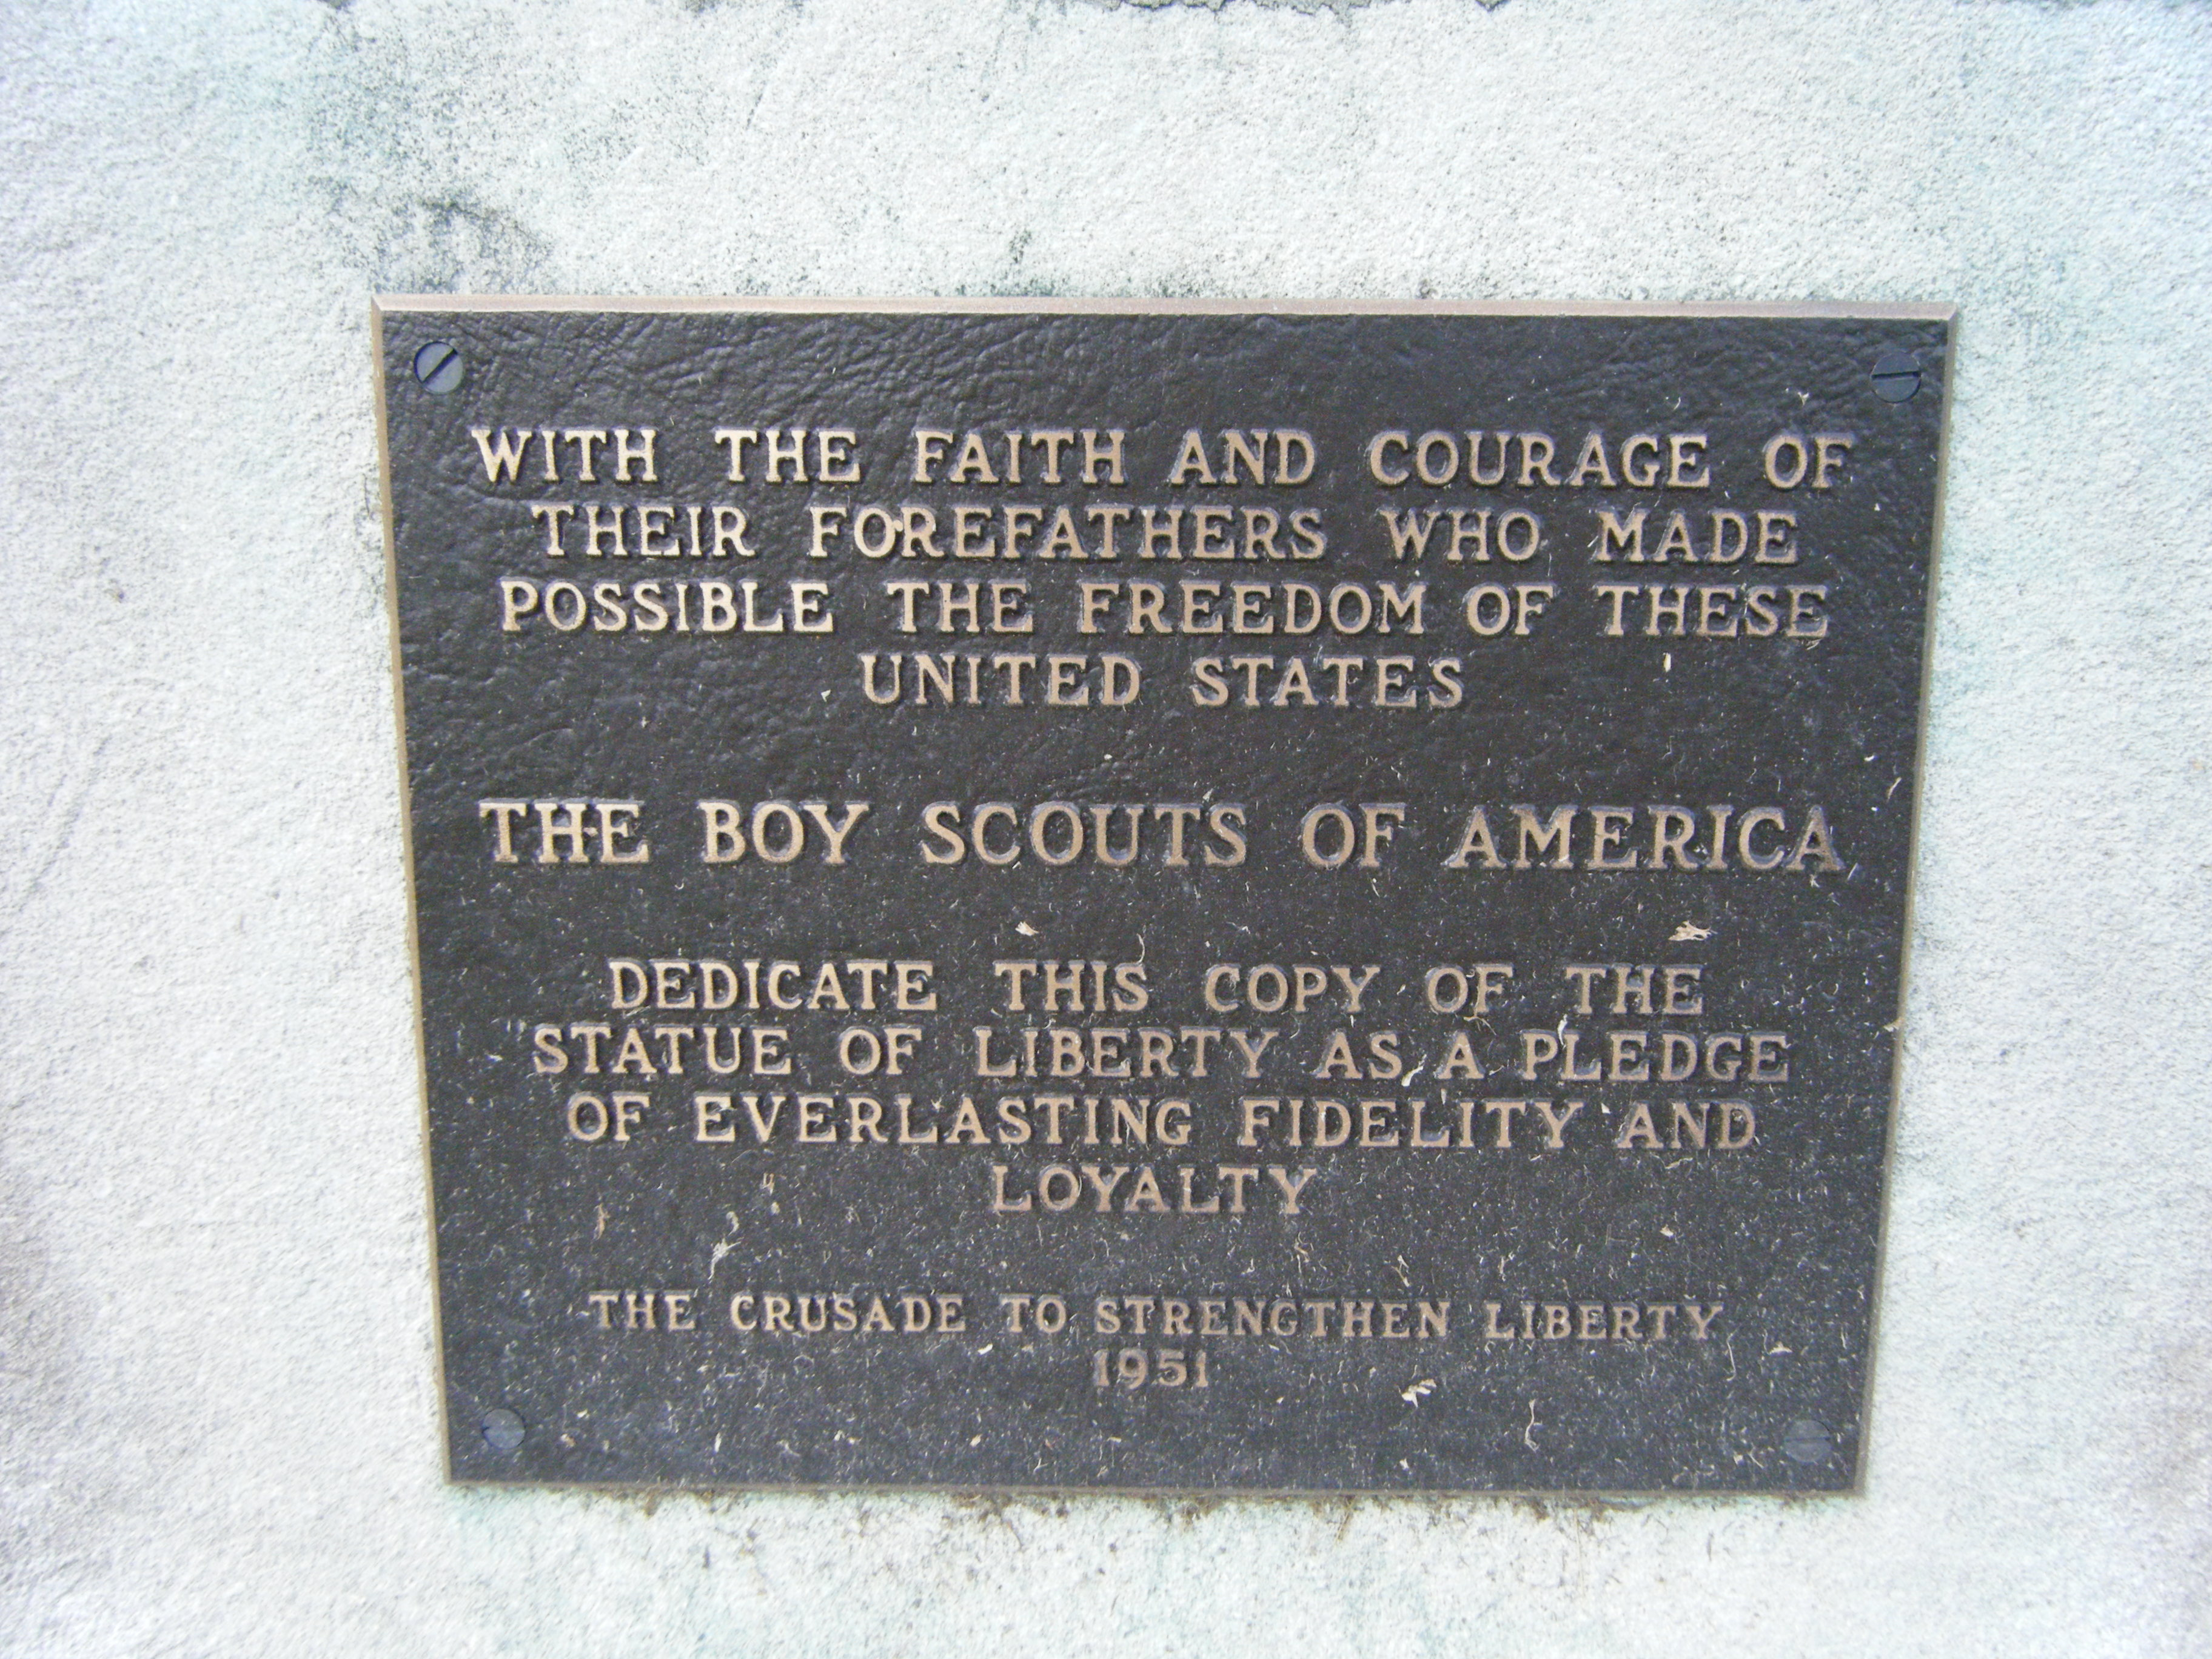 Copy of the Statue of Liberty contributed by the boy Scoutsin 1951 Memorial Plaque